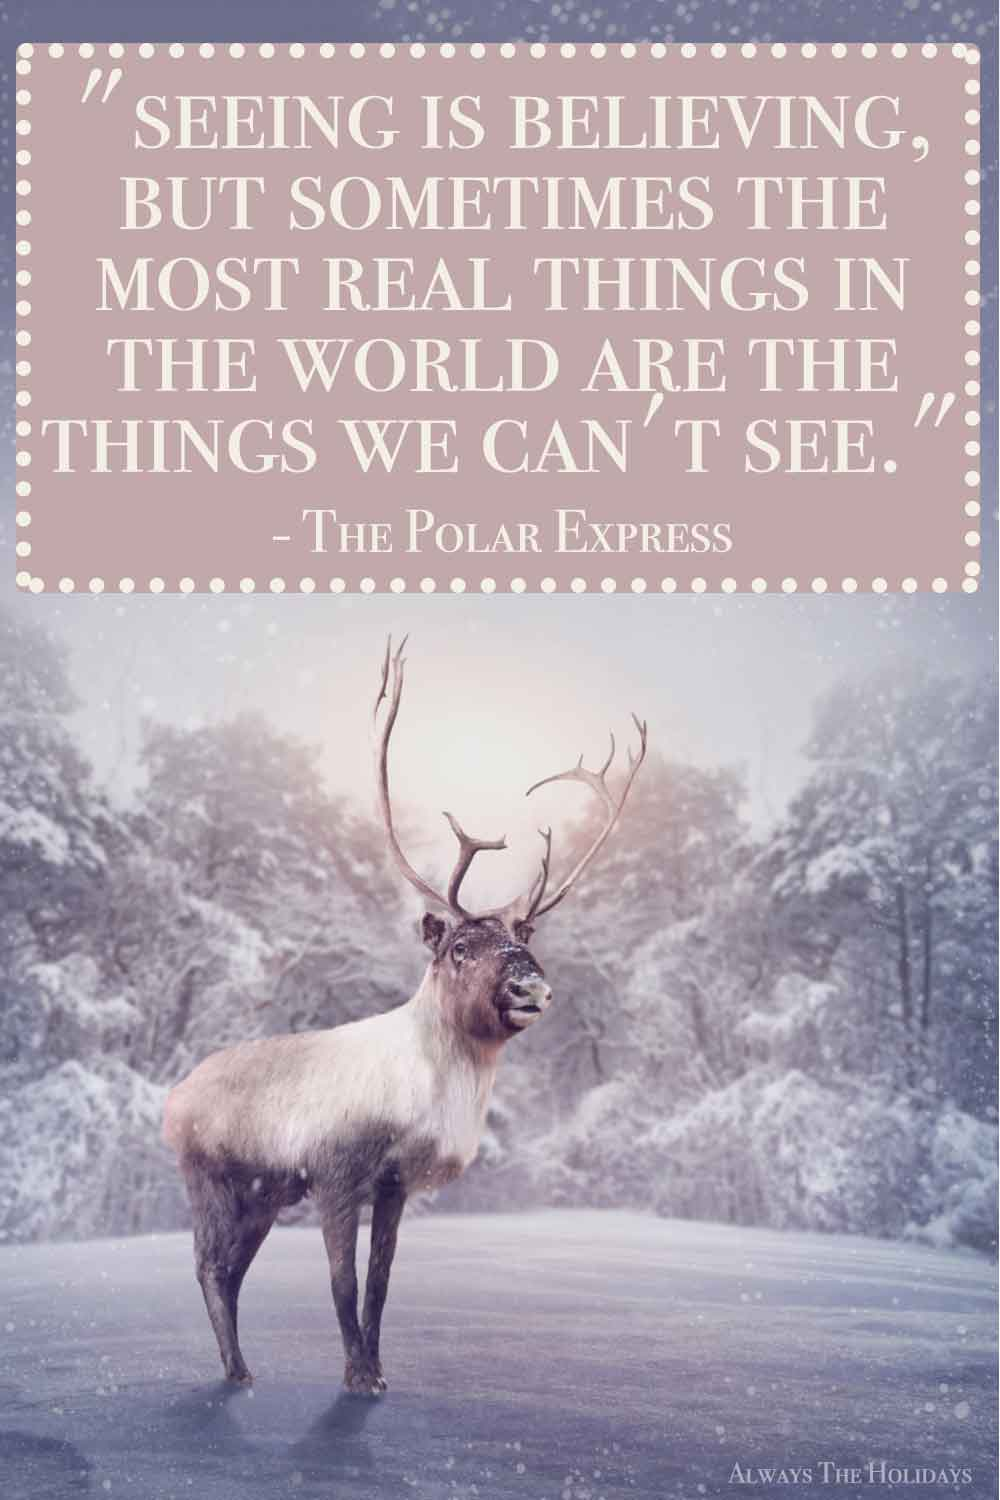 A reindeer standing in a snowy field in front of trees with a Christmas movie quote text overlay.